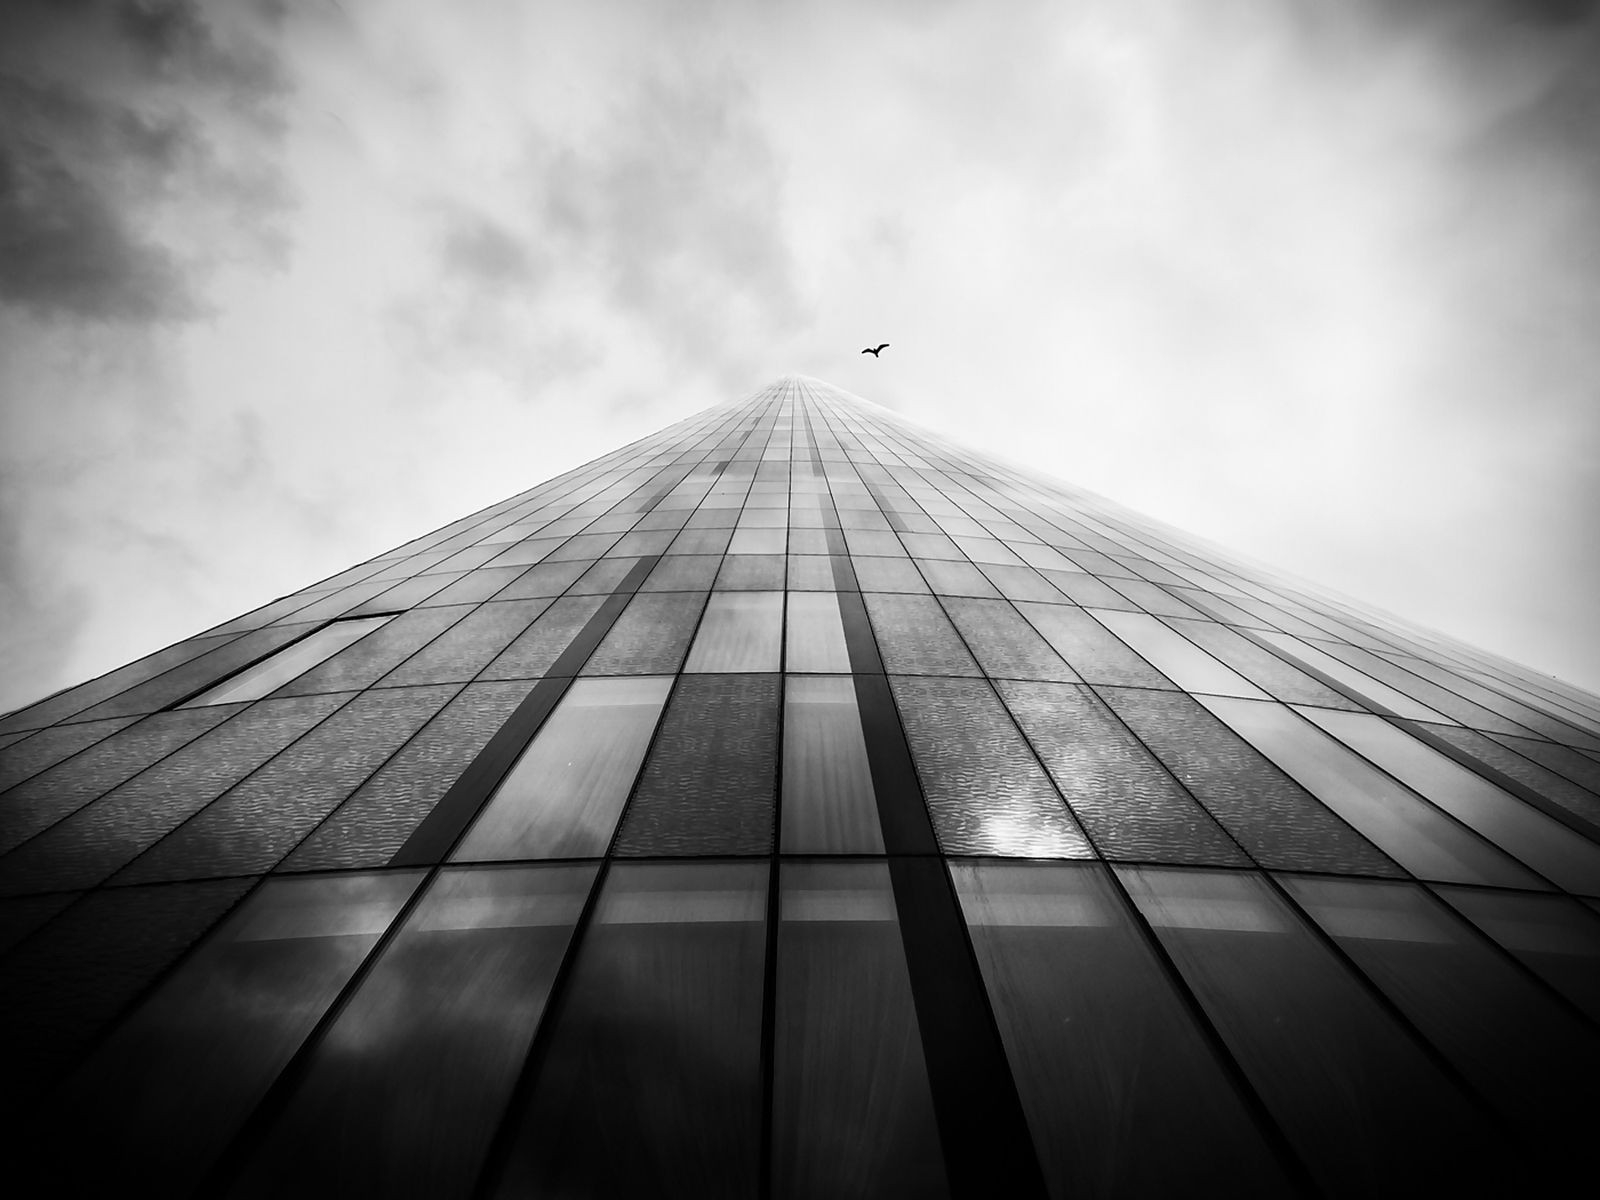 Pin By Sara On Black And White | Pinterest | Architectural inside Black And White Architecture Photography 29907